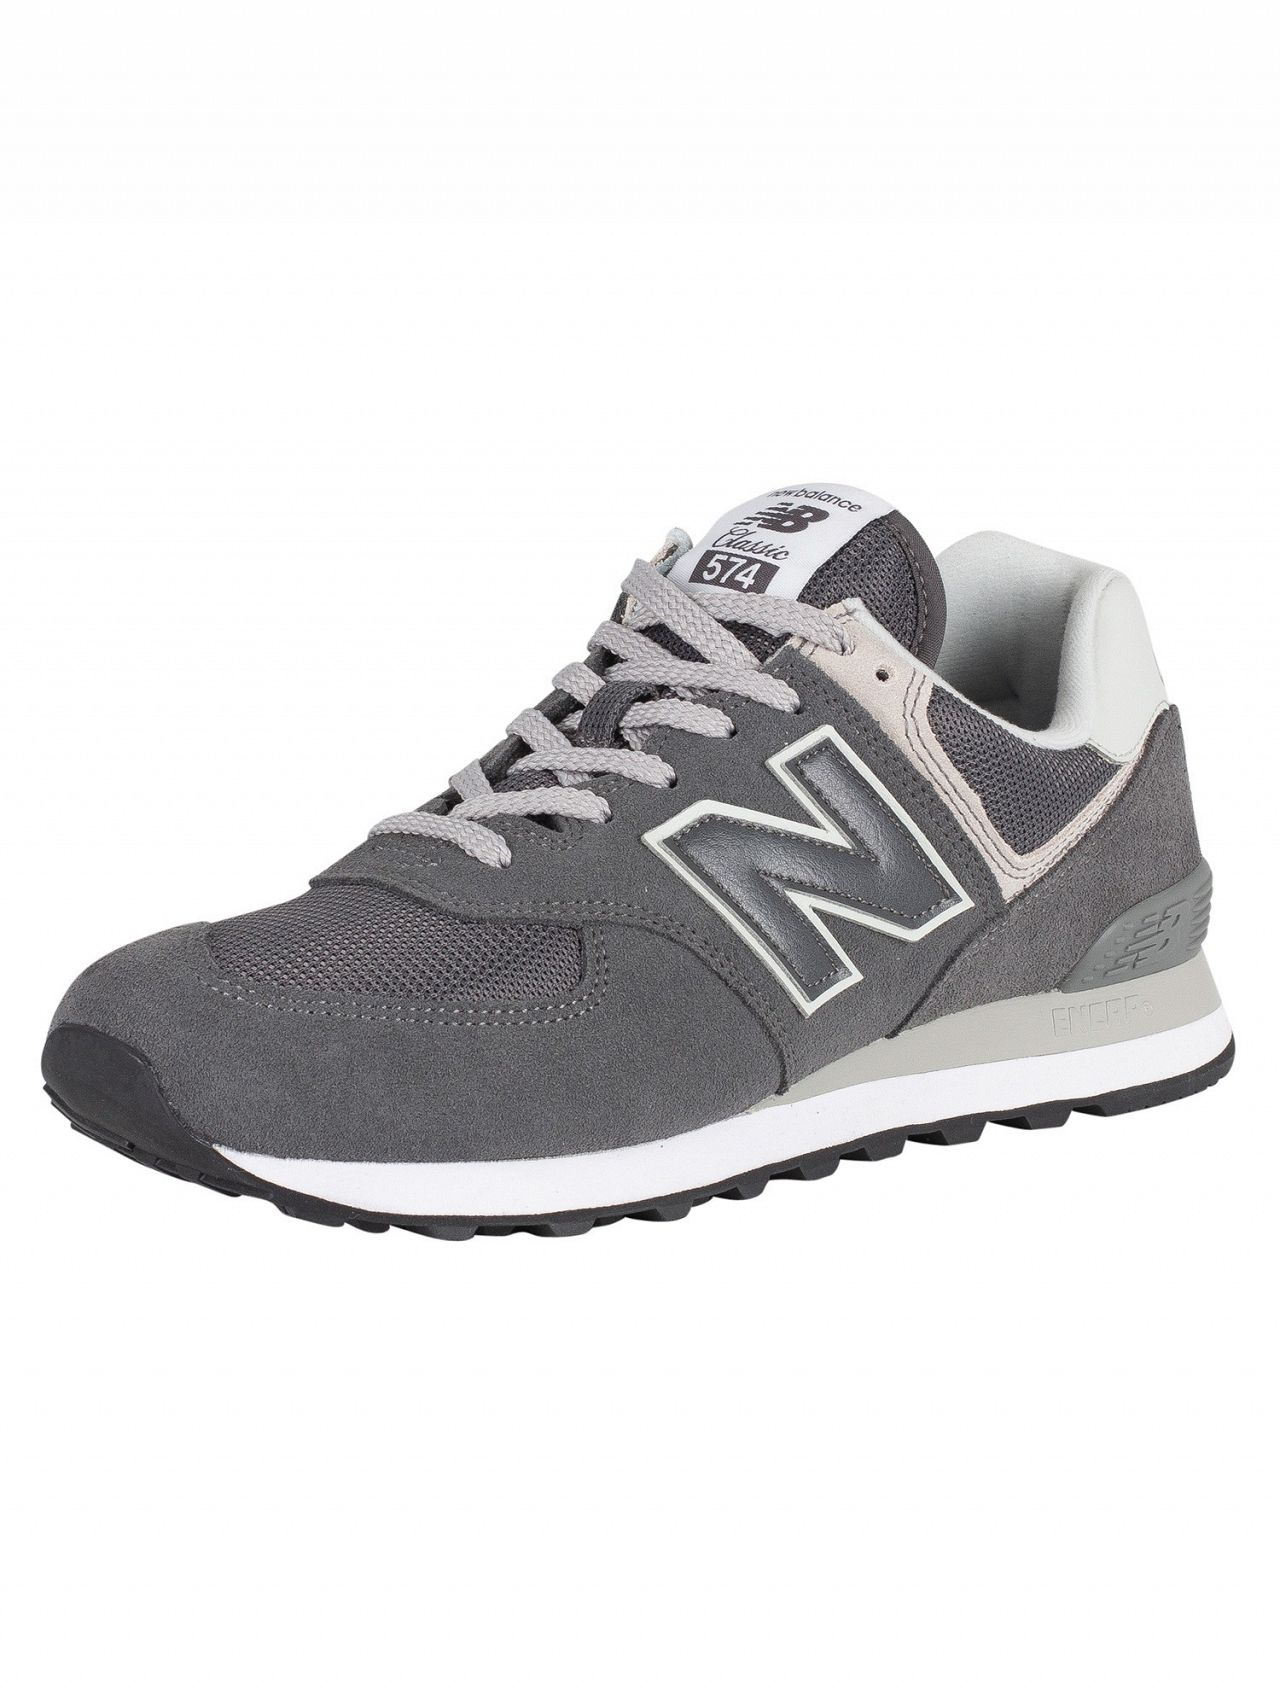 best service a5fa5 bdeb1 New Balance Grey 574 Suede Trainers